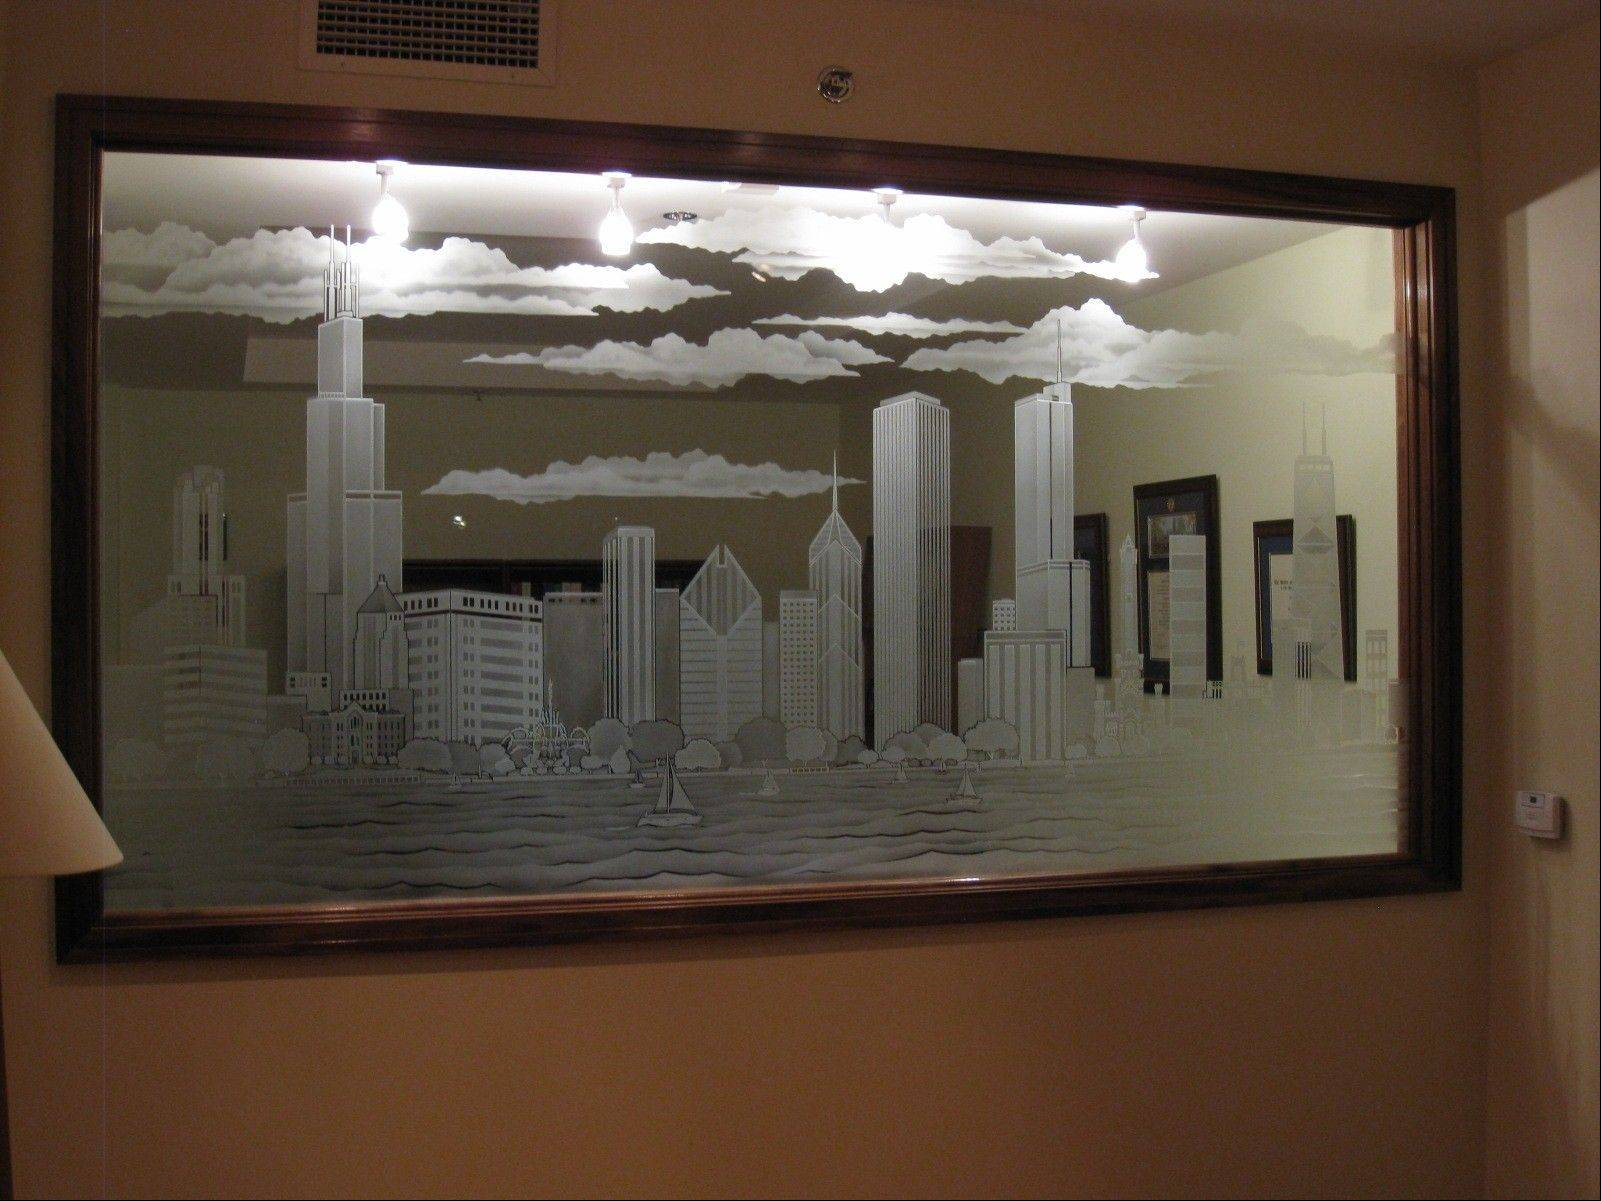 This Chicago skyline was etched into a mirror for a customer.